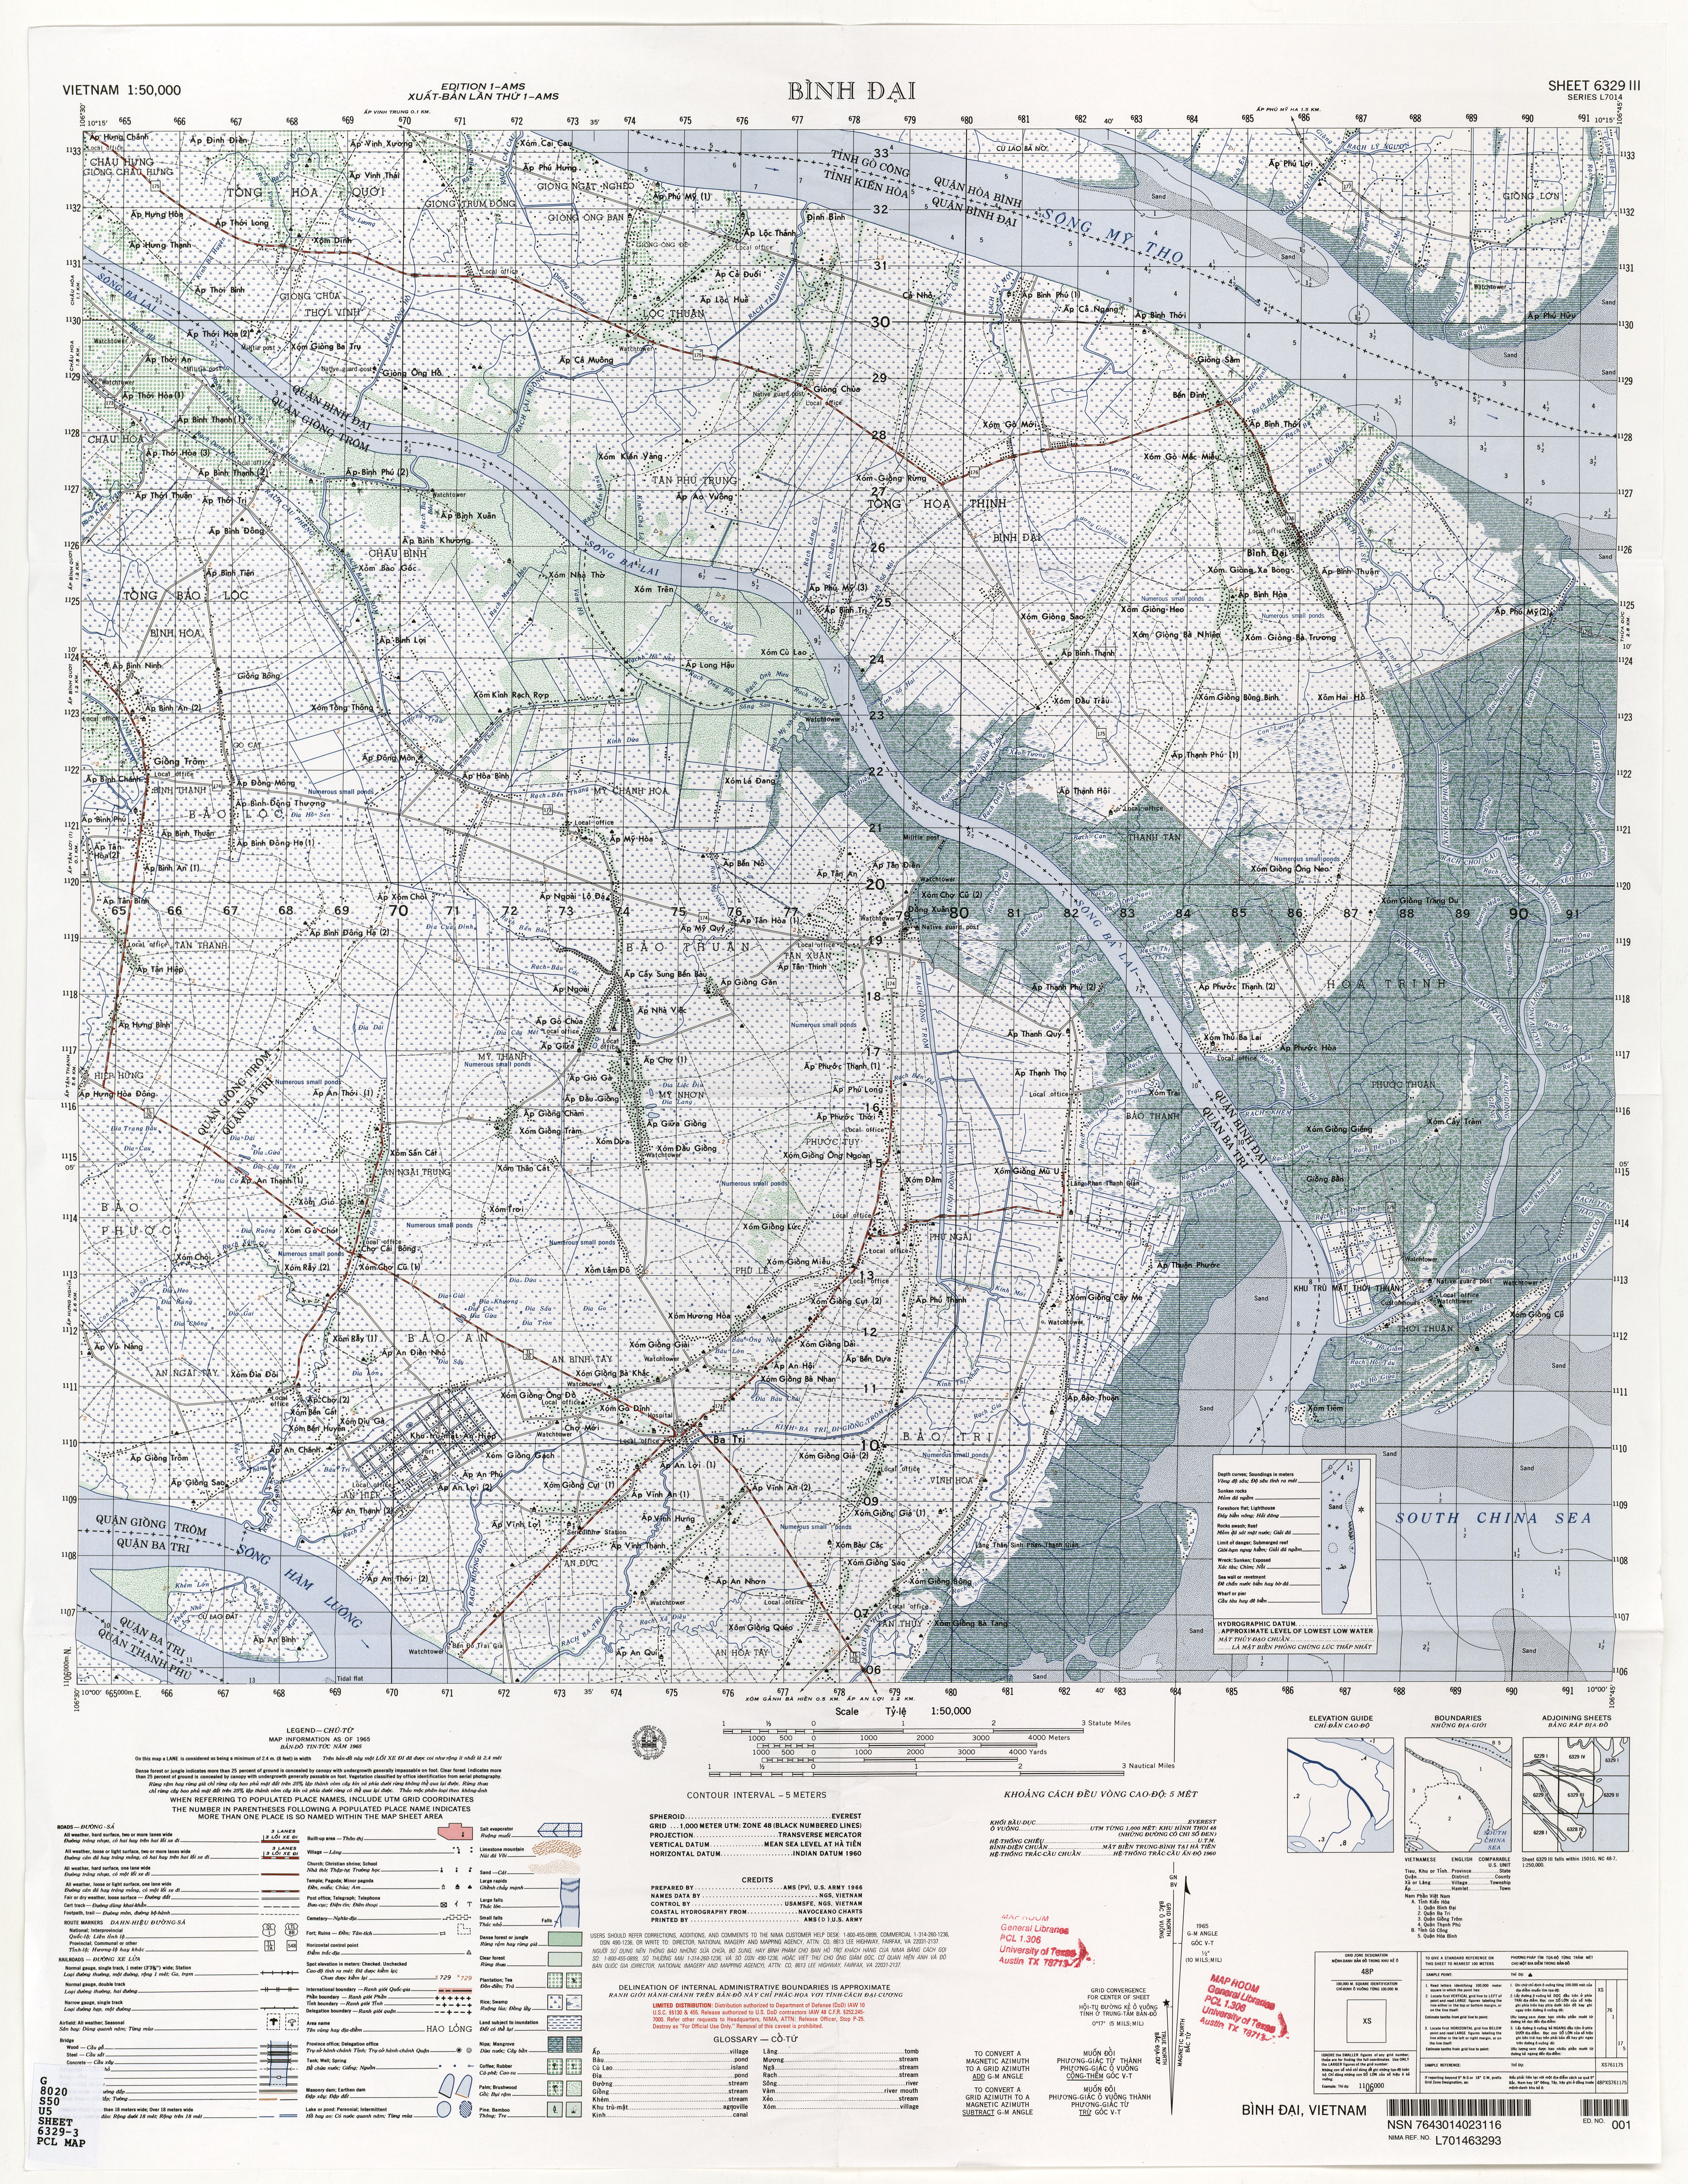 Vietnam Topographic Maps - Perry-Castañeda Map Collection